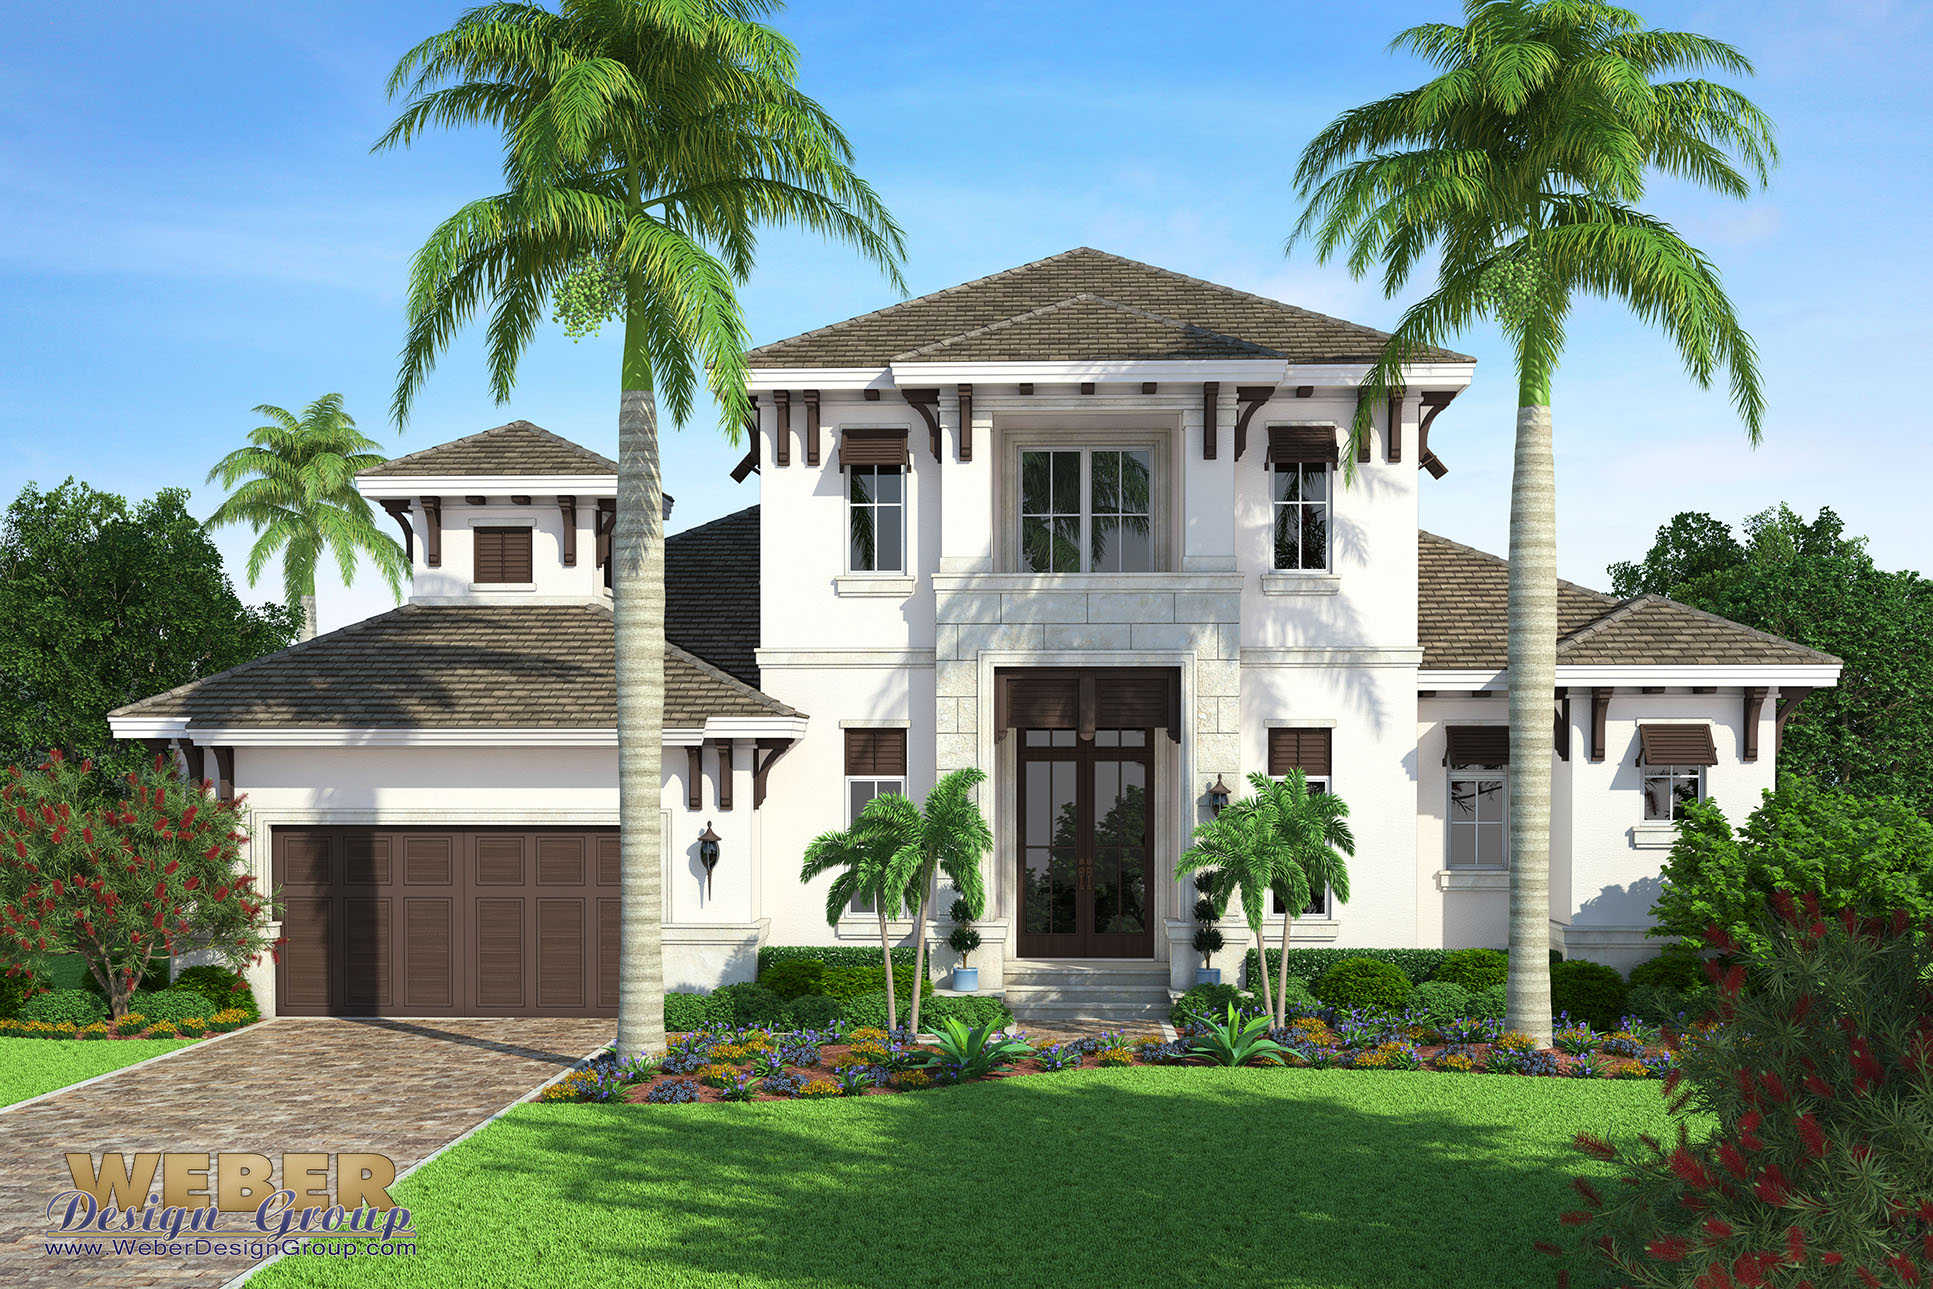 West indies home plan edgewater model weber design group for Weber house plans